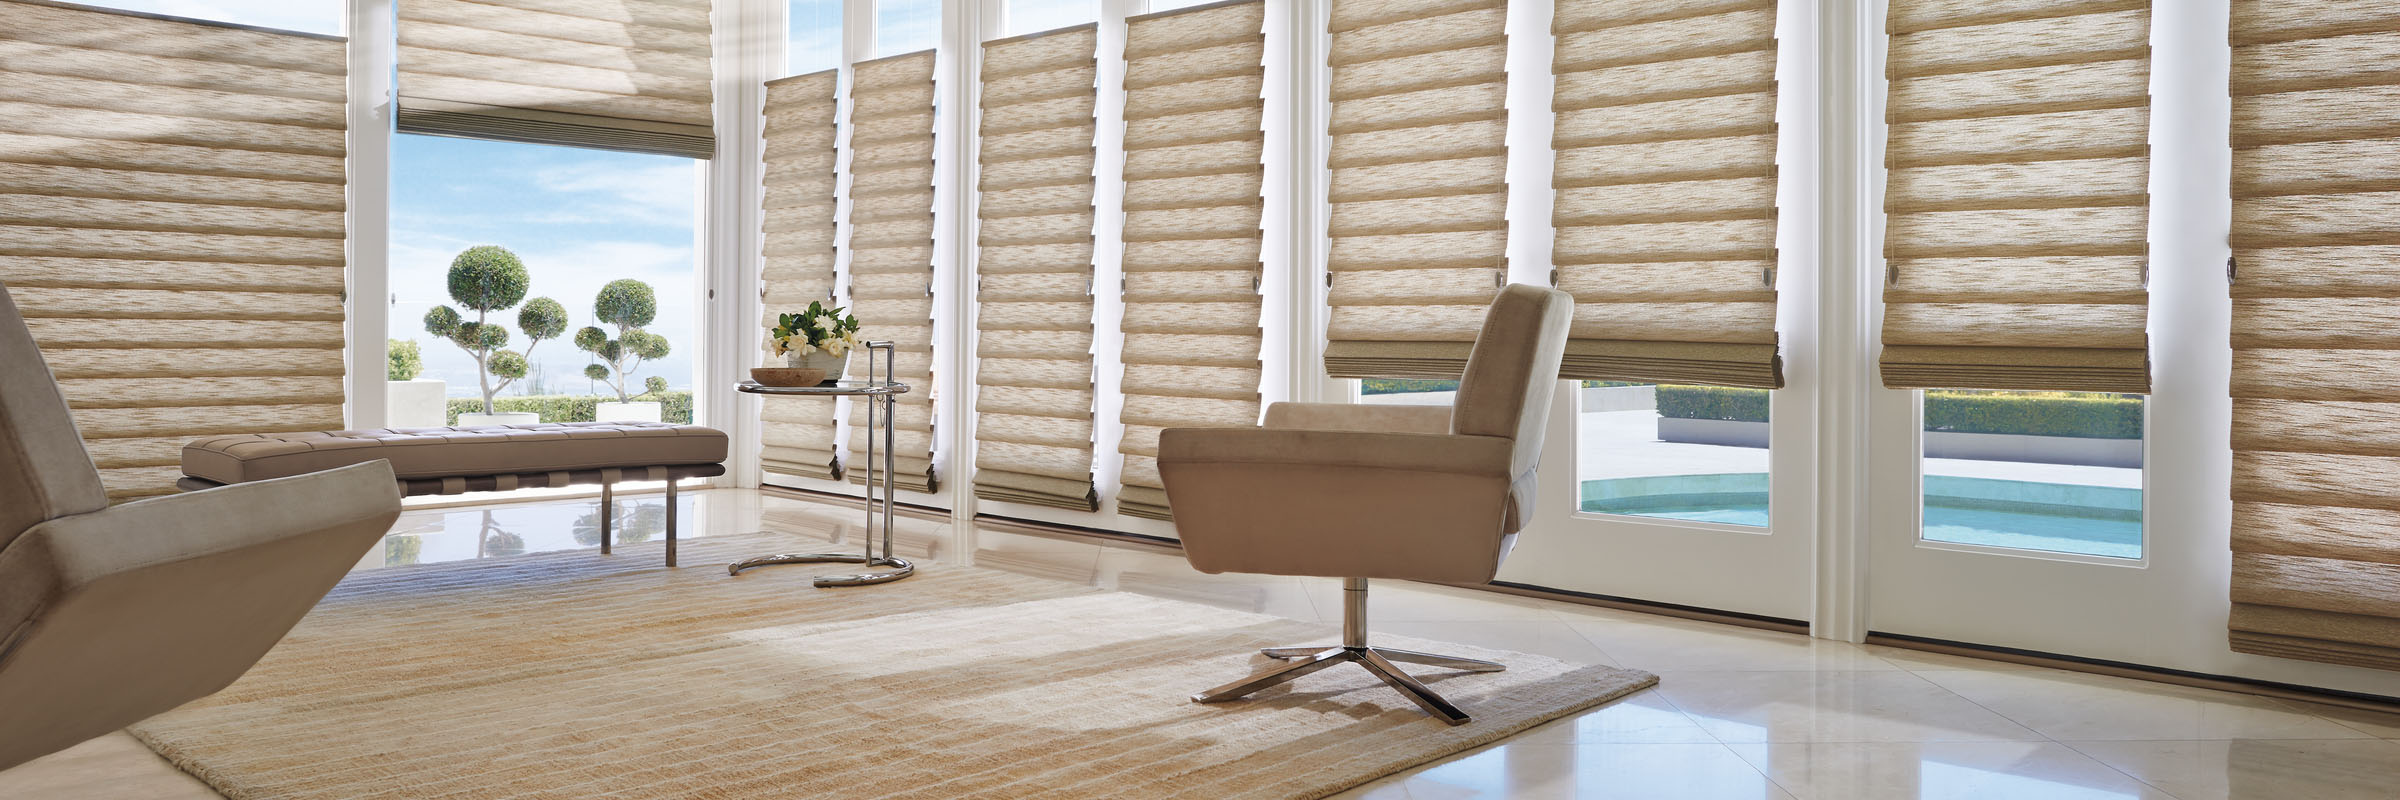 products douglas in ottawa hunter shutters draperies shades elite blinds douglass and